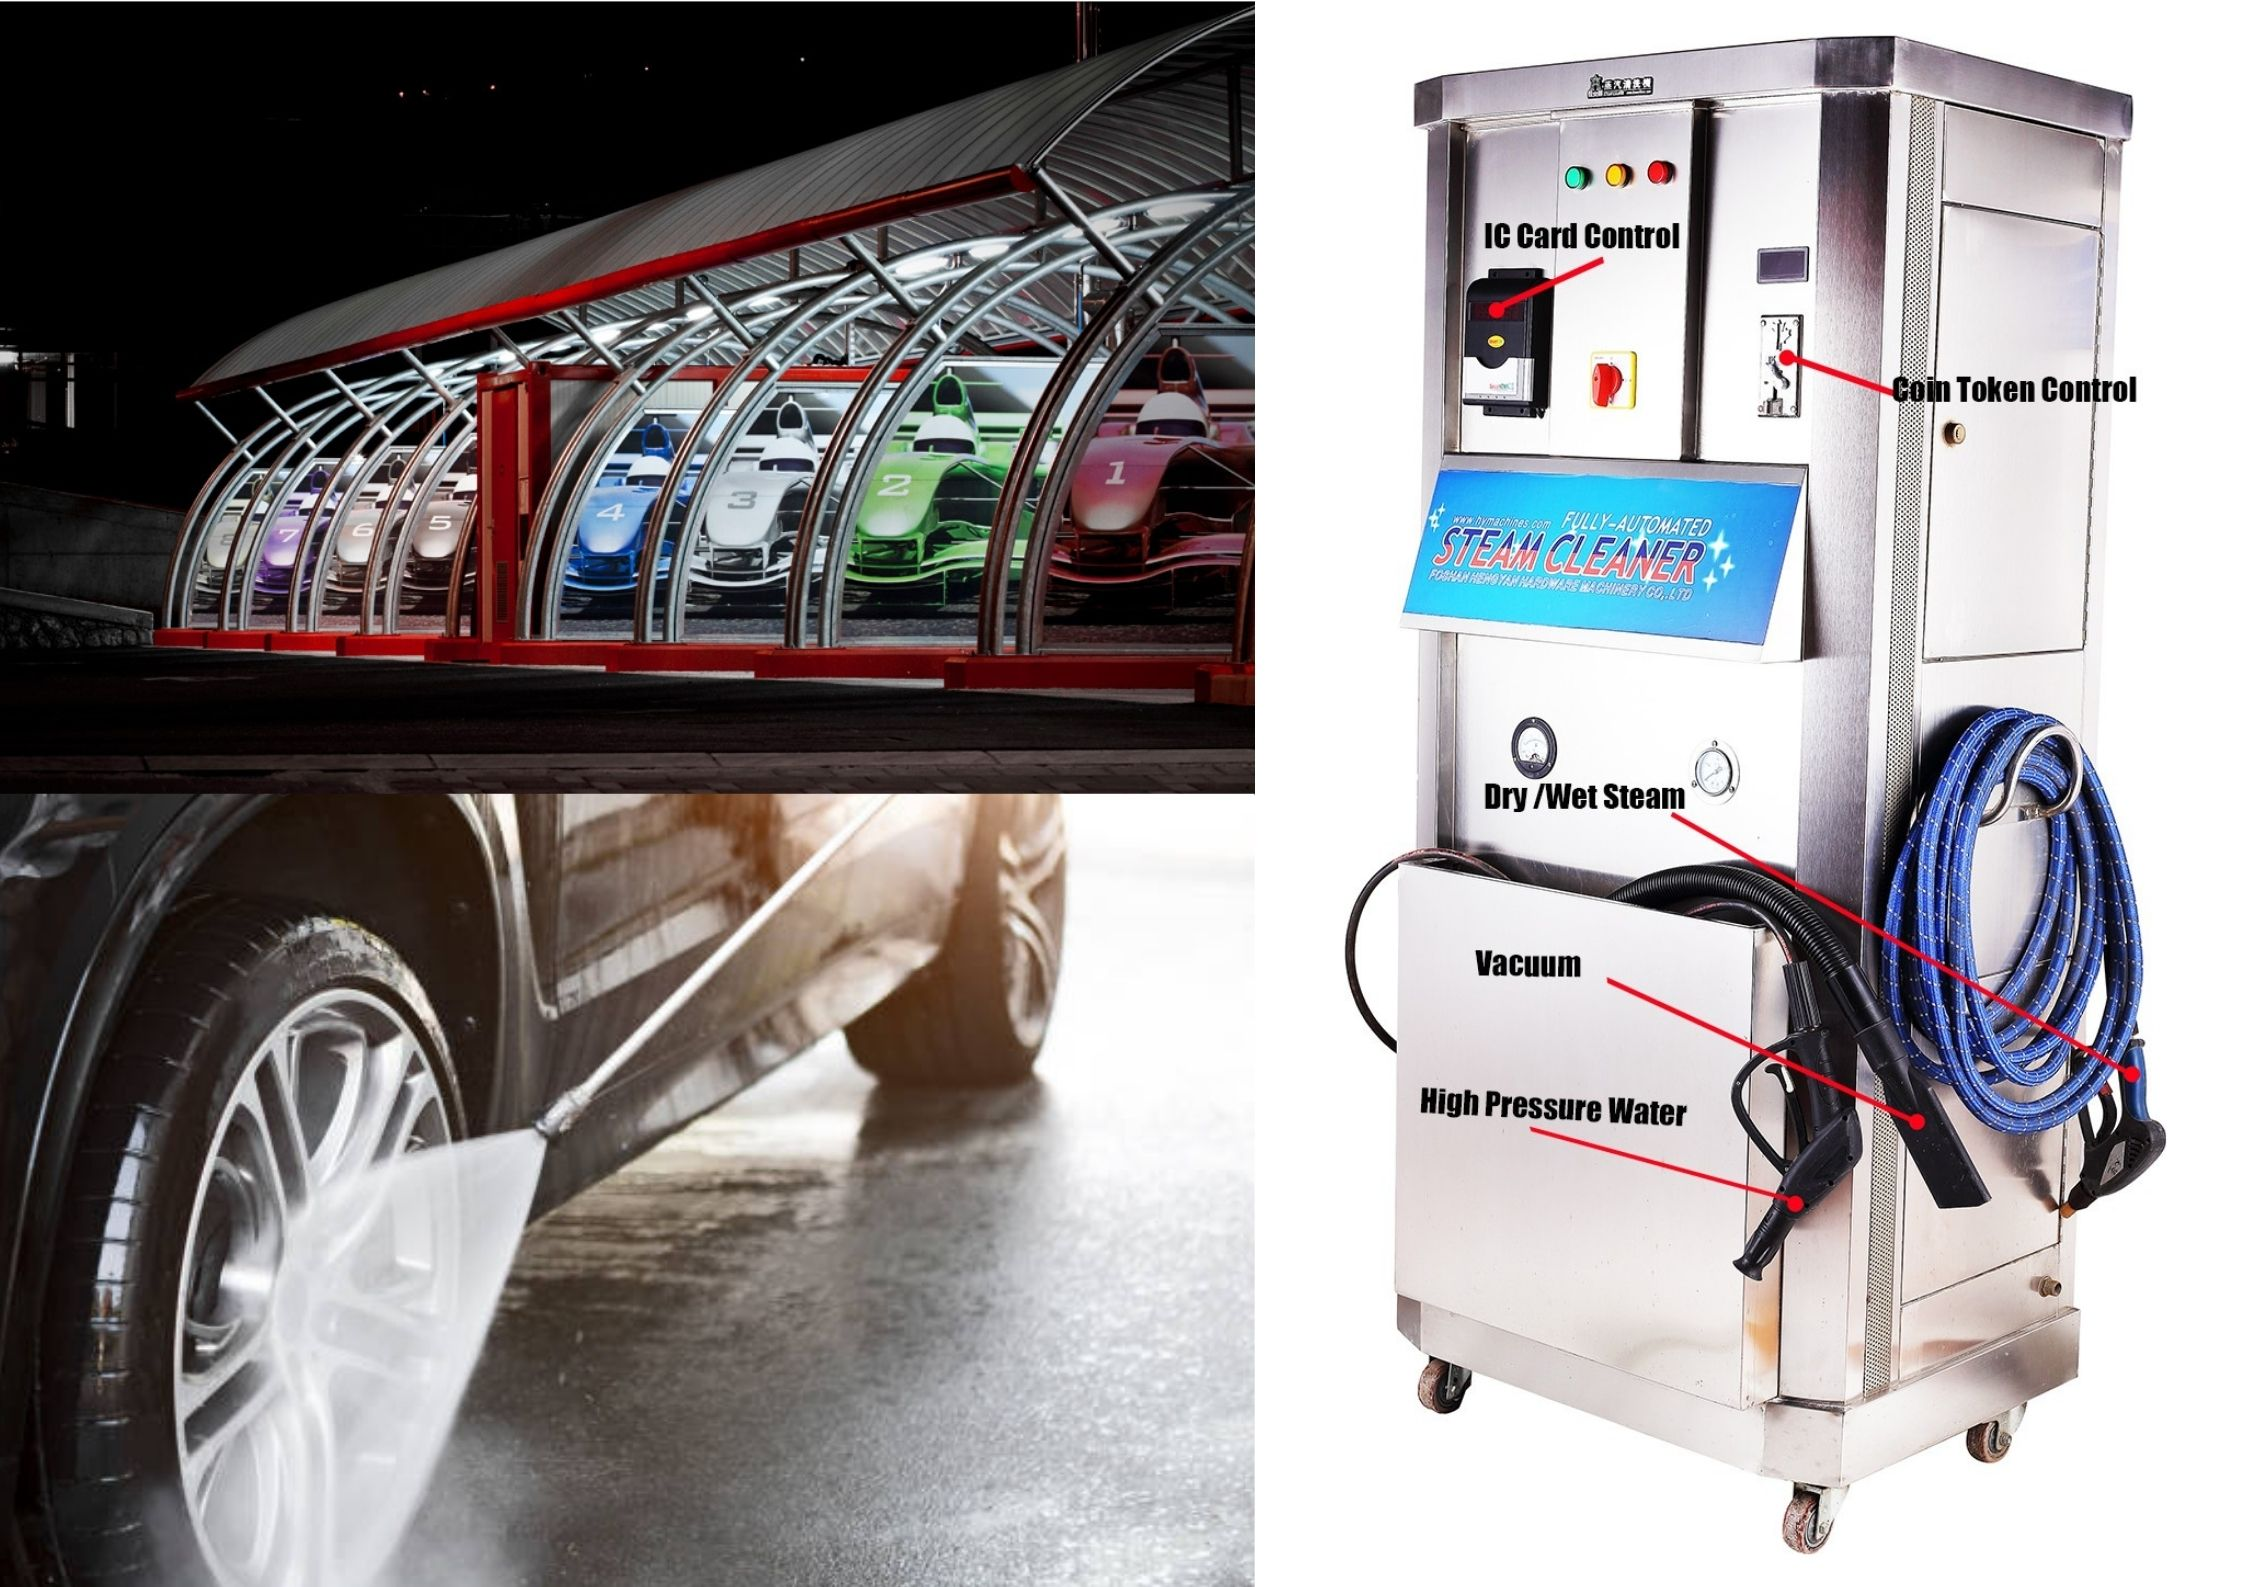 Self Service Car Wash In 3 Easy Method: Save Your Money